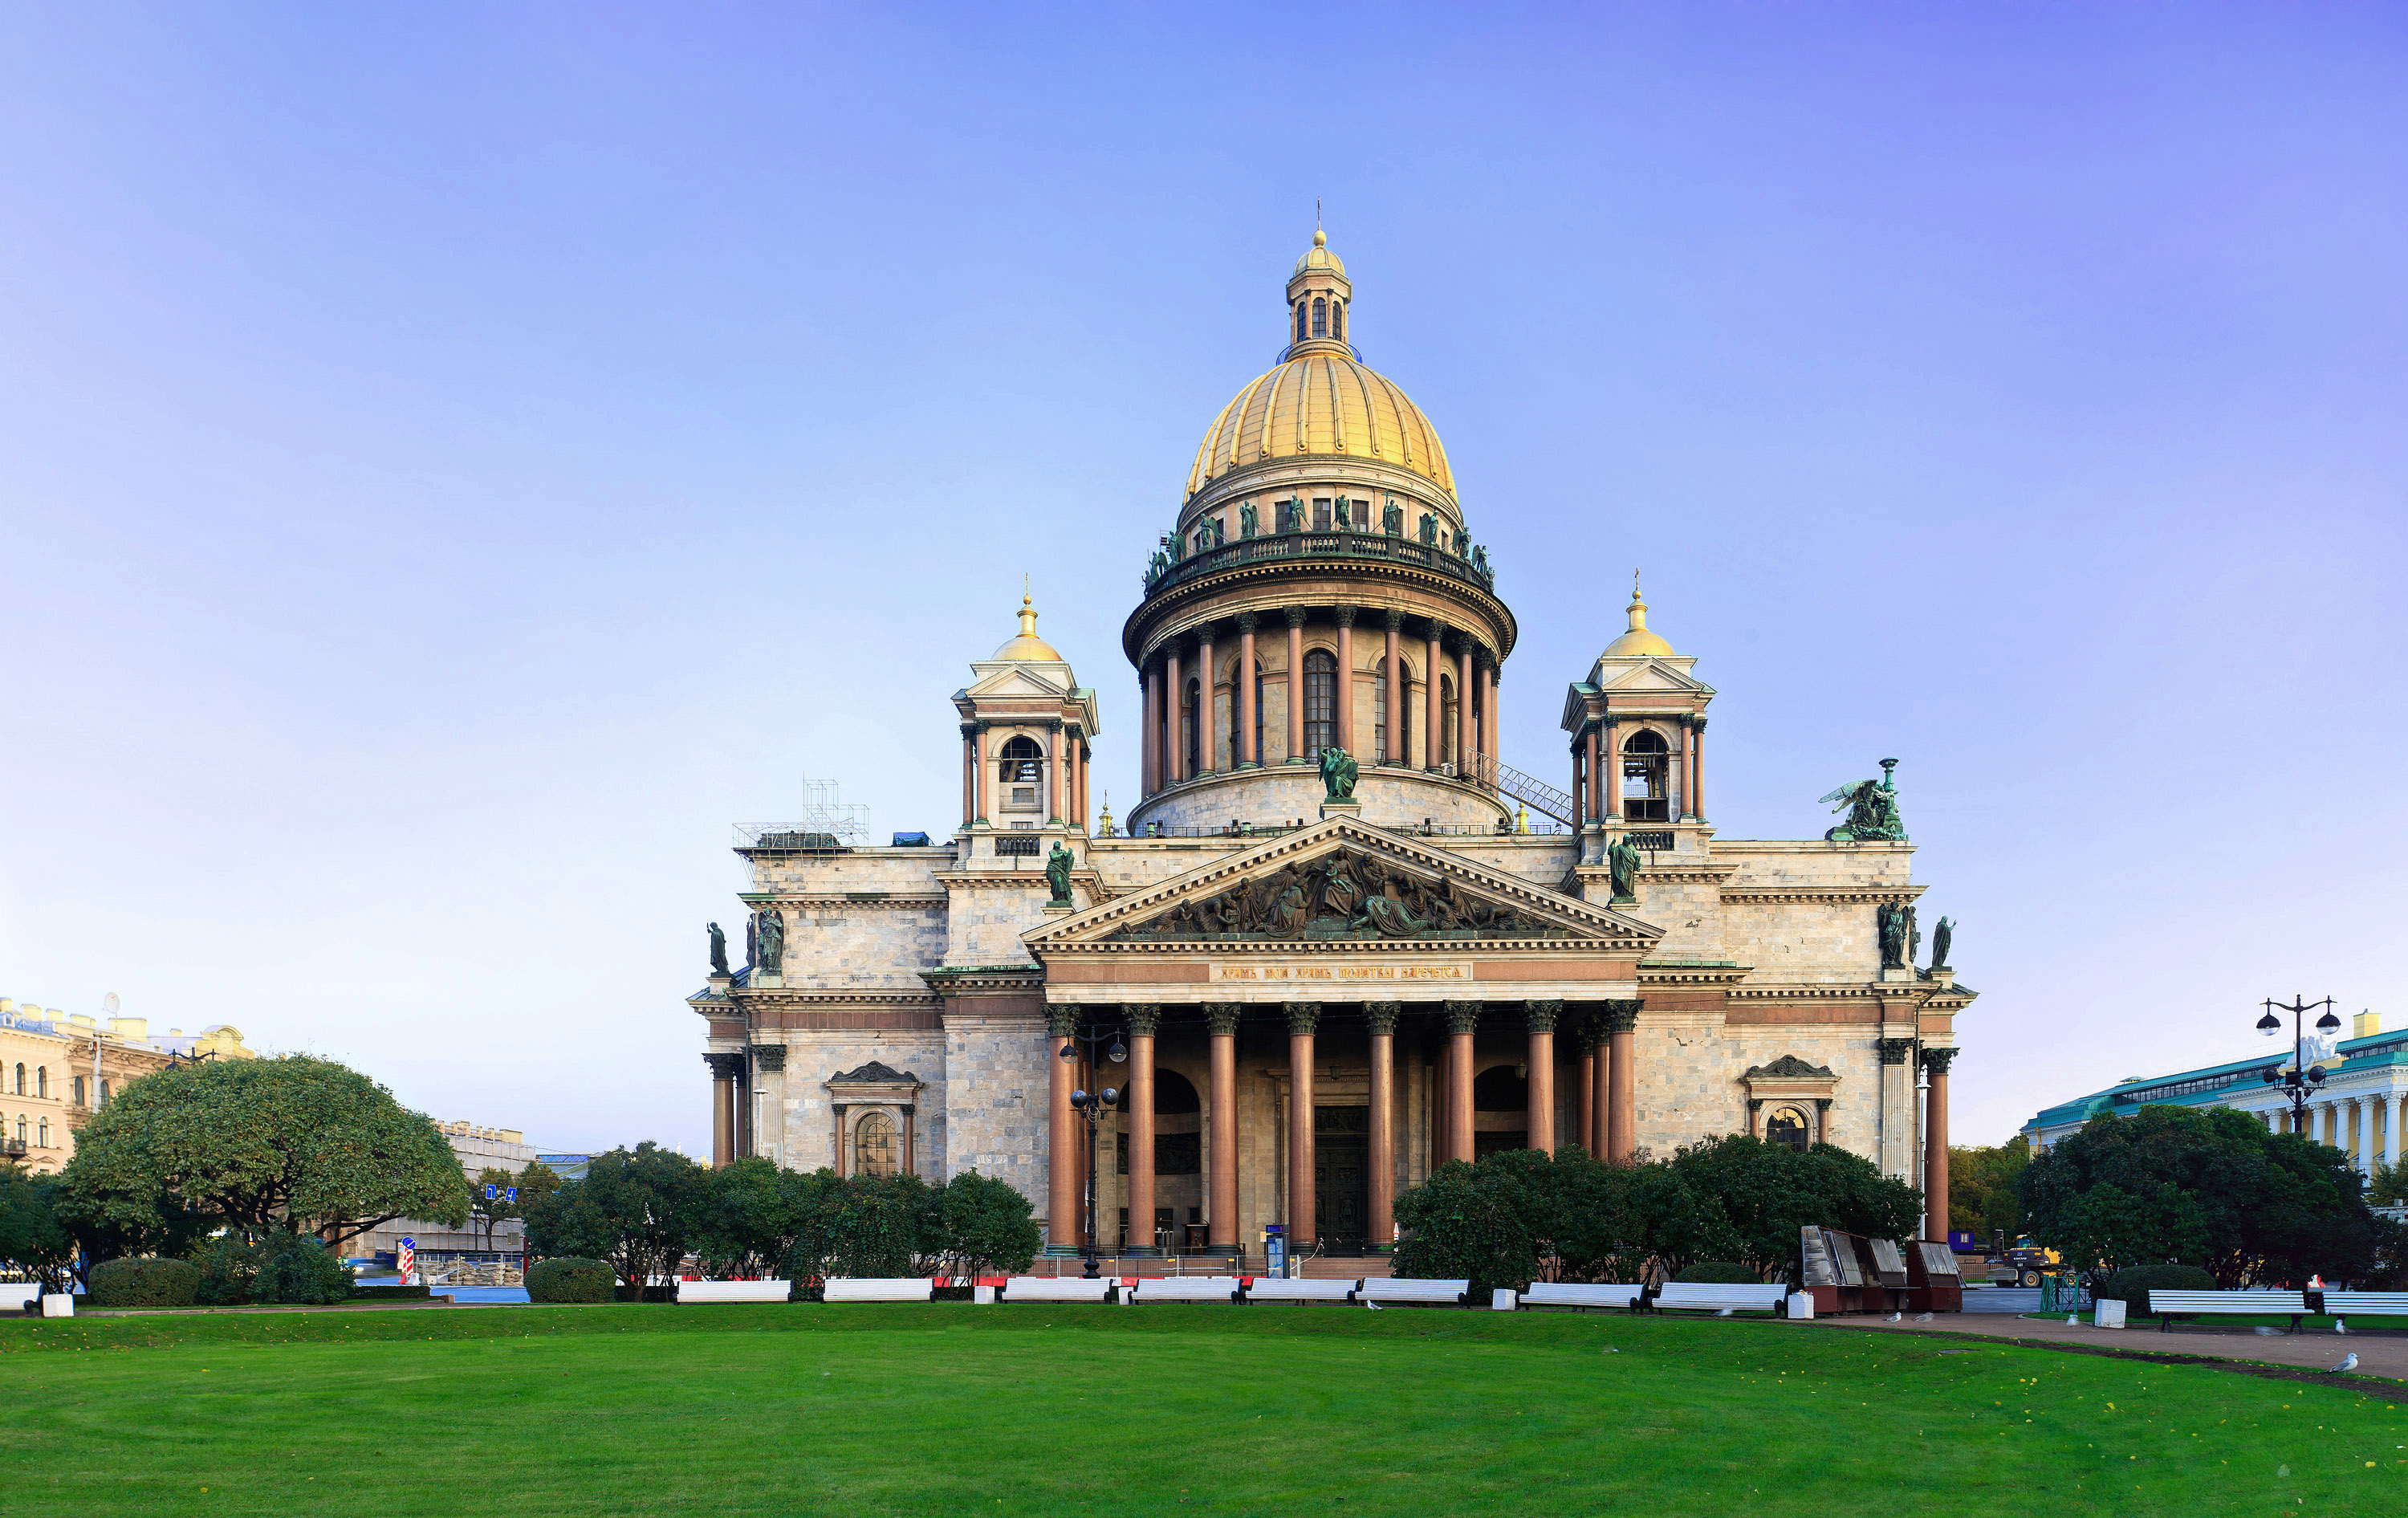 Following the St. Isaac's Cathedral, the Russian Orthodox Church wants to receive Tauride Chersonesos 01/23/2017 44